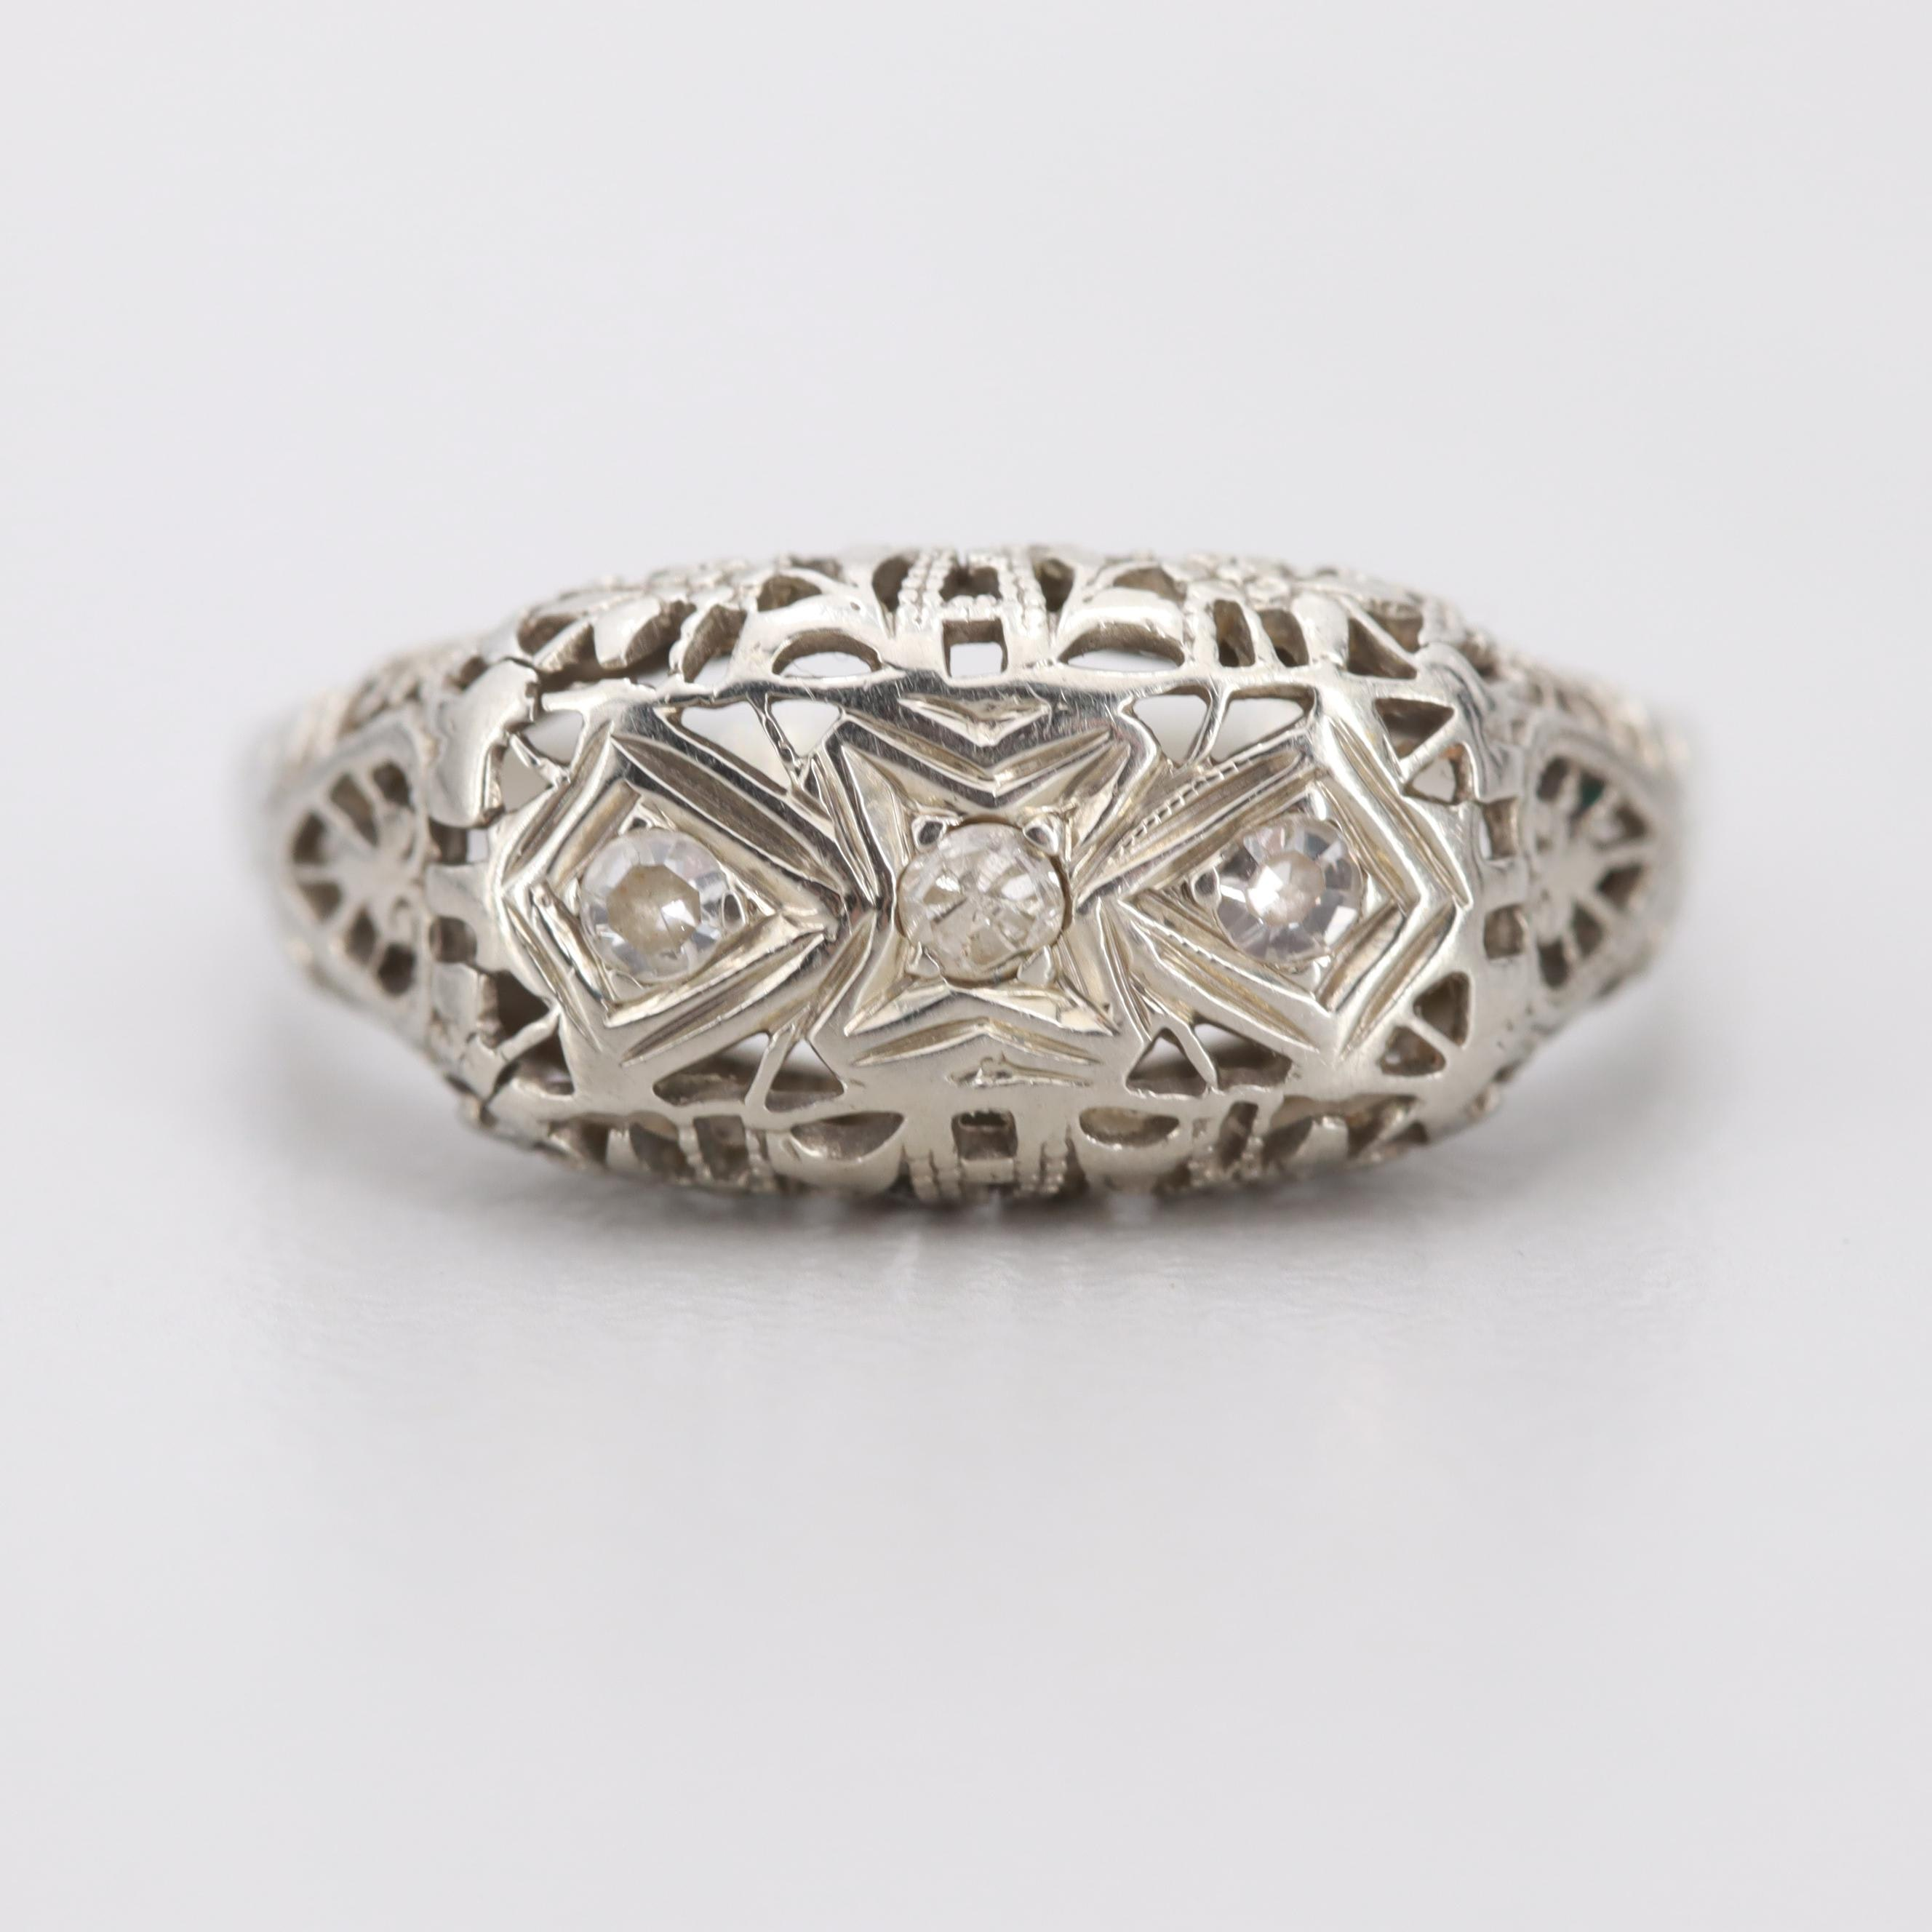 Vintage 18K White Gold Diamond Openwork Ring